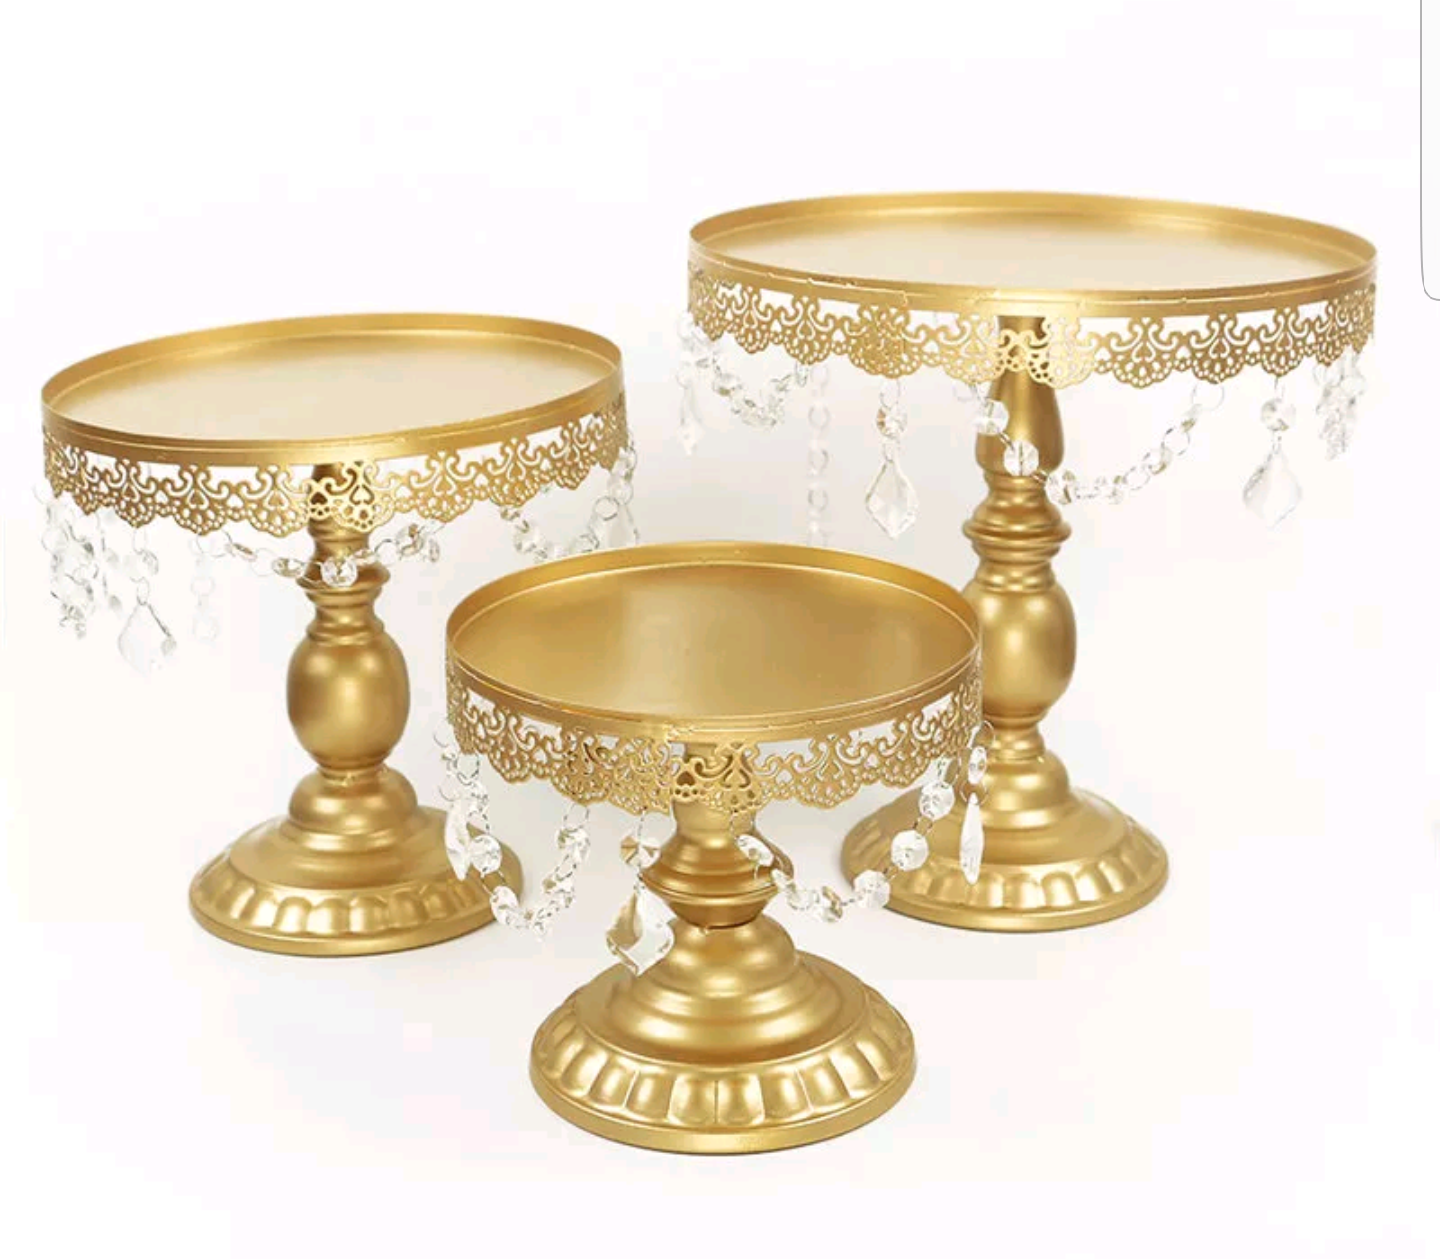 Gold Cake Stands with Crystals